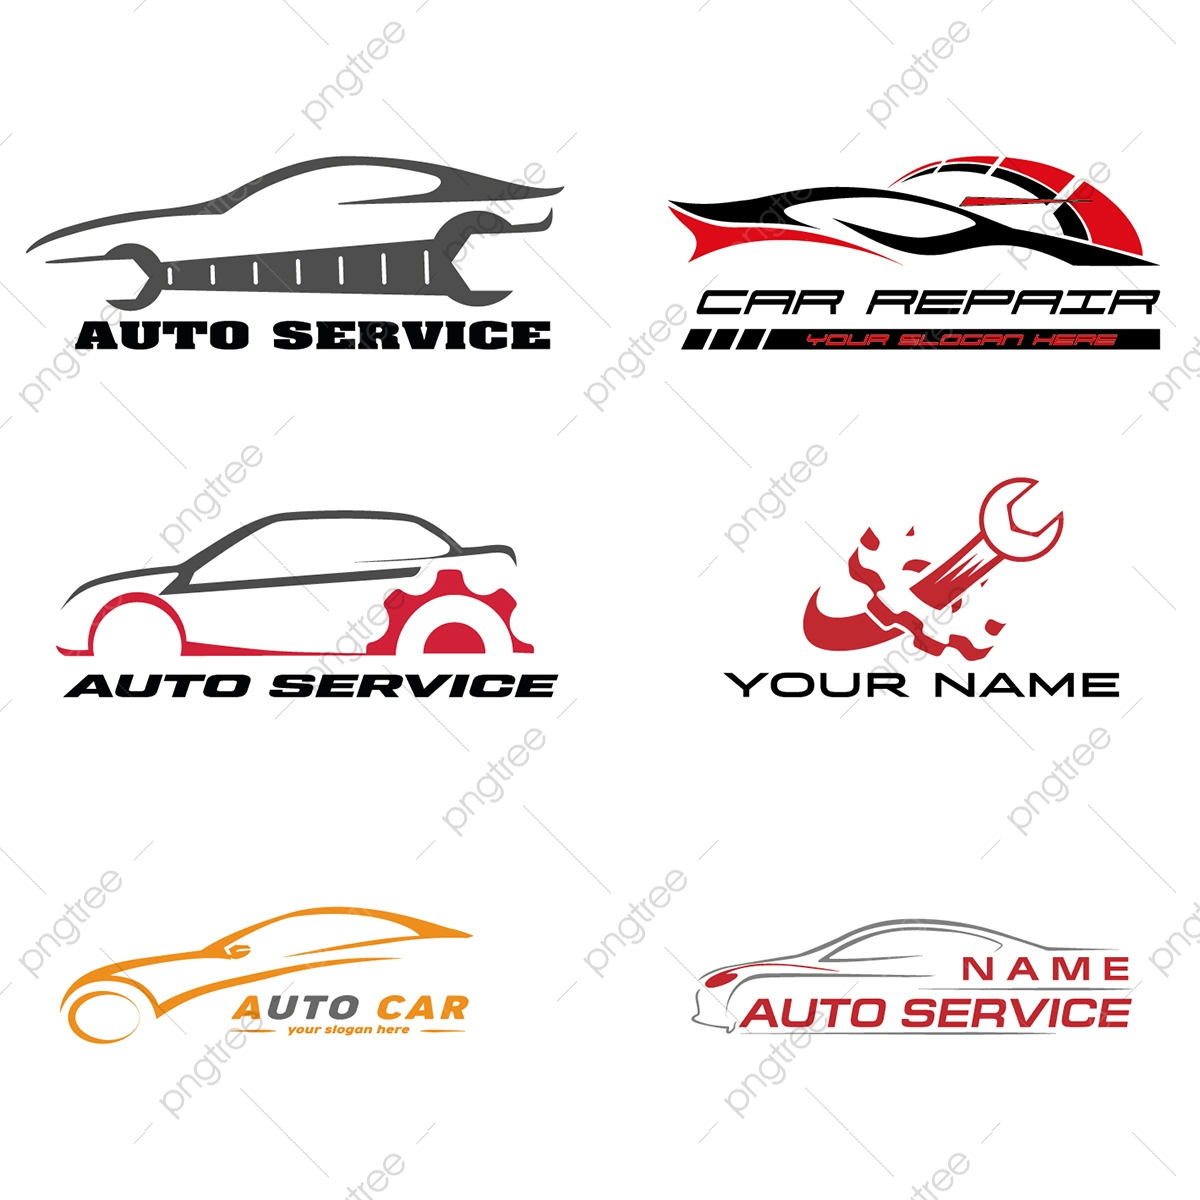 Car Repair Png, Vector, PSD, And Clipart With Transparent